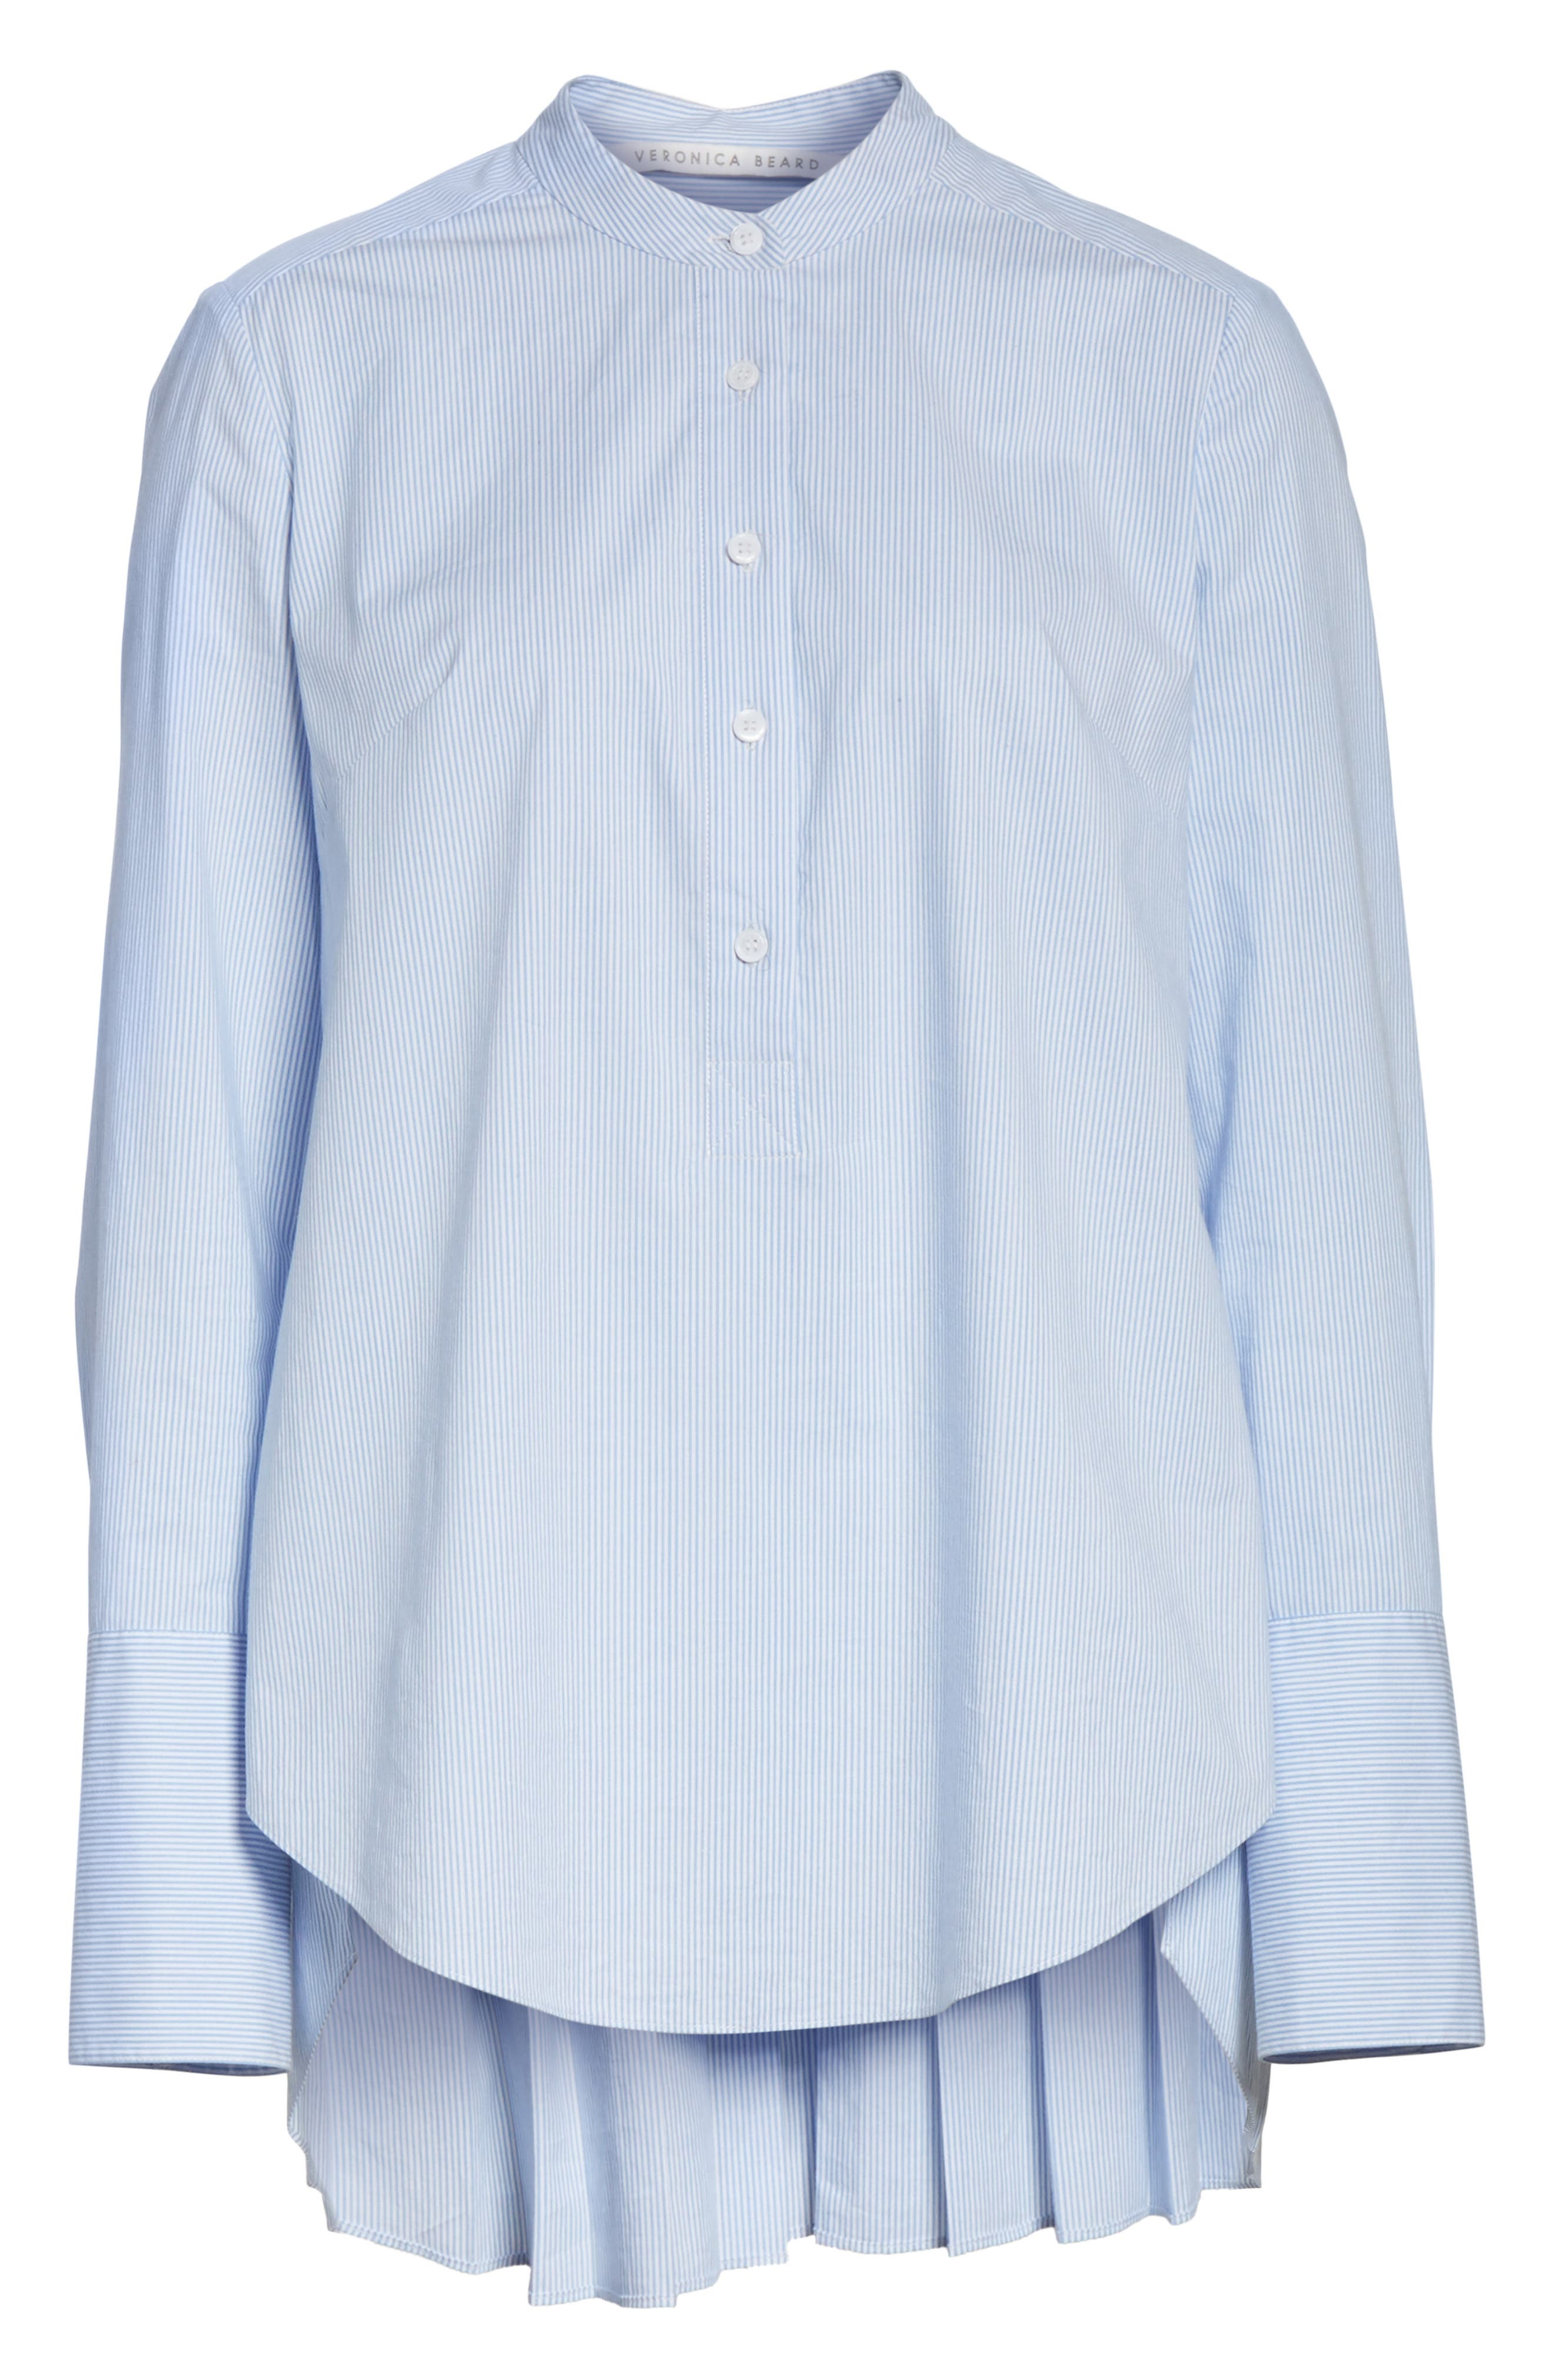 Greer Pleated Stretch Cotton Shirt,                             Alternate thumbnail 6, color,                             452